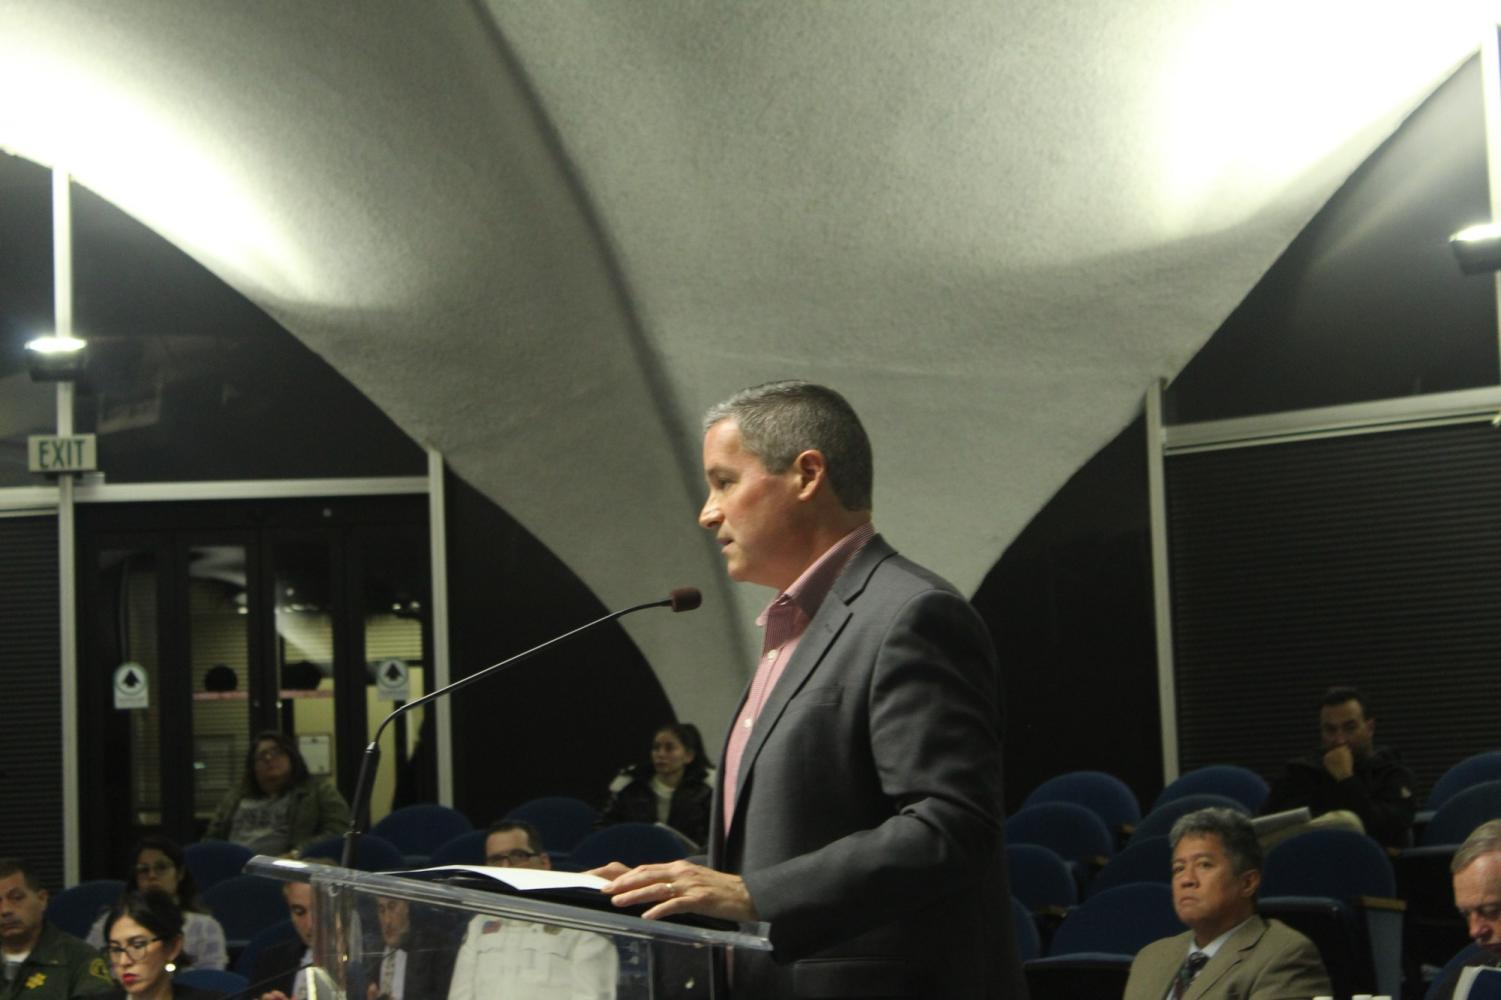 Here's Corey Autrey giving his view/voice on that matter. He dislikes the idea of the new wirless implementations and does not favor it. Photo credit: Oscar Torres